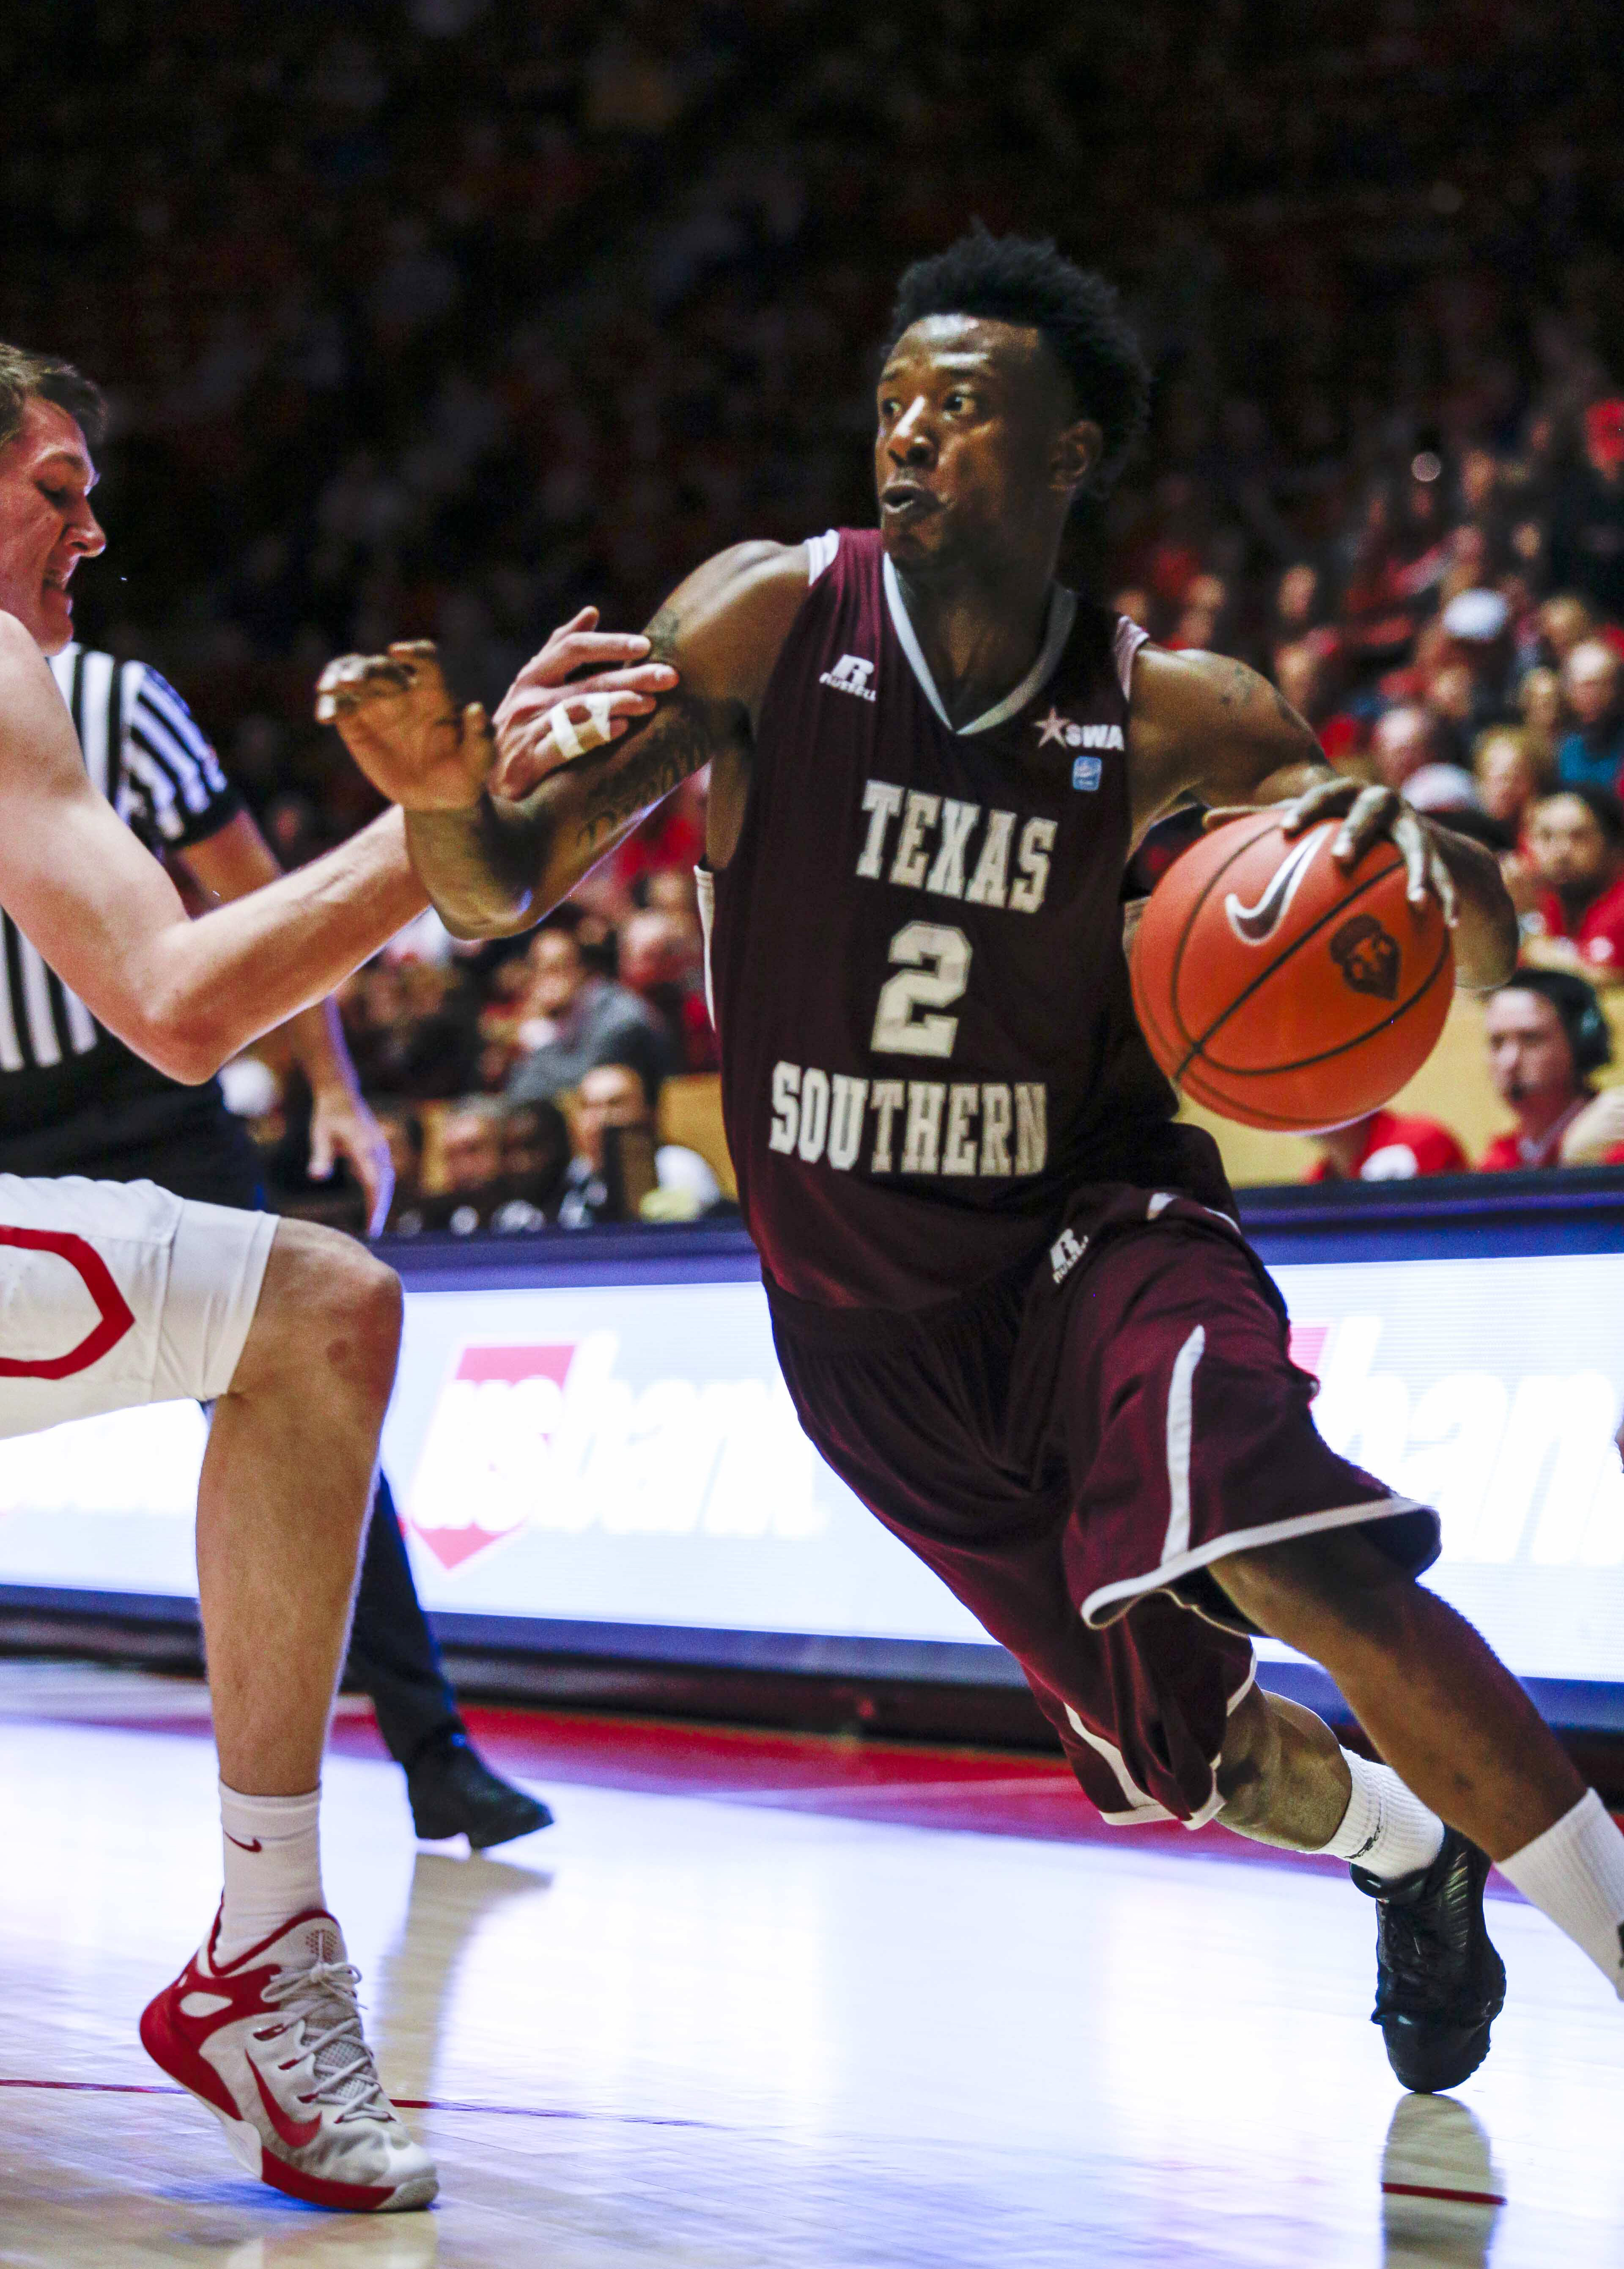 Texas Southern's Chris Thomas (2) drives against a New Mexico defender during the first half an NCAA college basketball game, Friday, Nov. 13, 2015, in Albuquerque, N.M. (AP Photo/Juan Labreche)